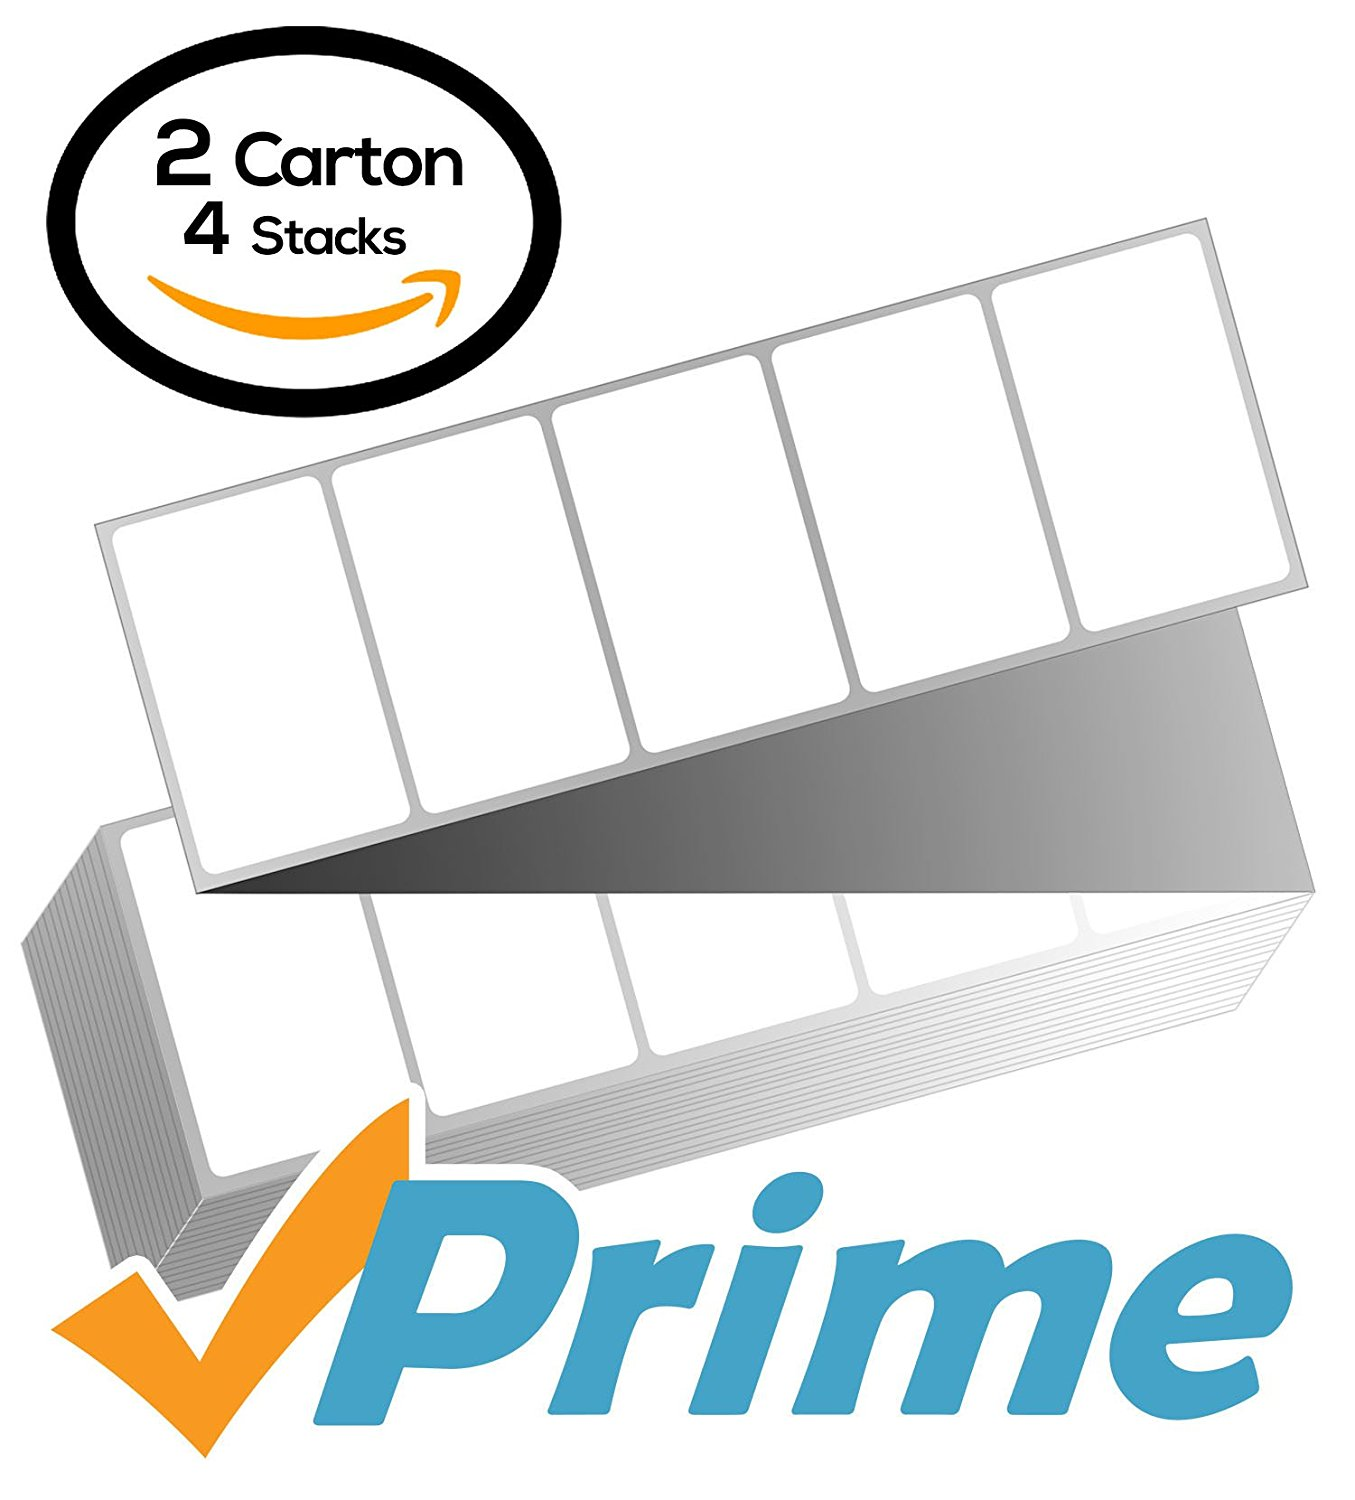 4 x 2 Fanfold Zebra Compatible Direct Thermal Labels (2 Cartons) for